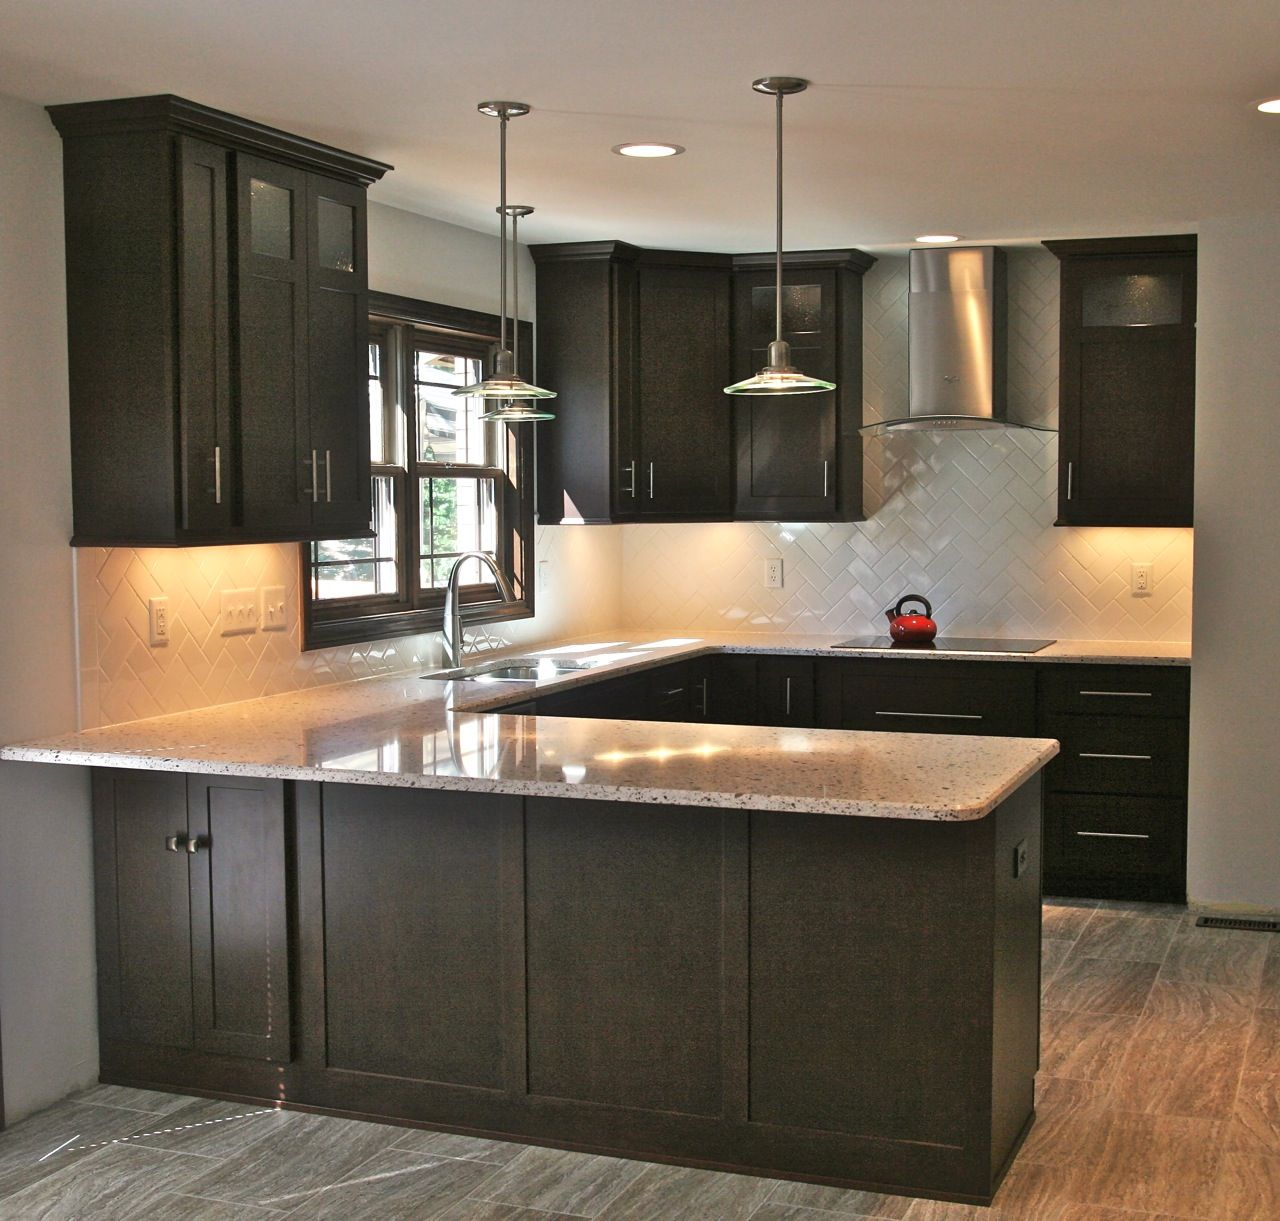 Images Of Black Kitchen Cabinets: Herringbone Backsplash Kitchen